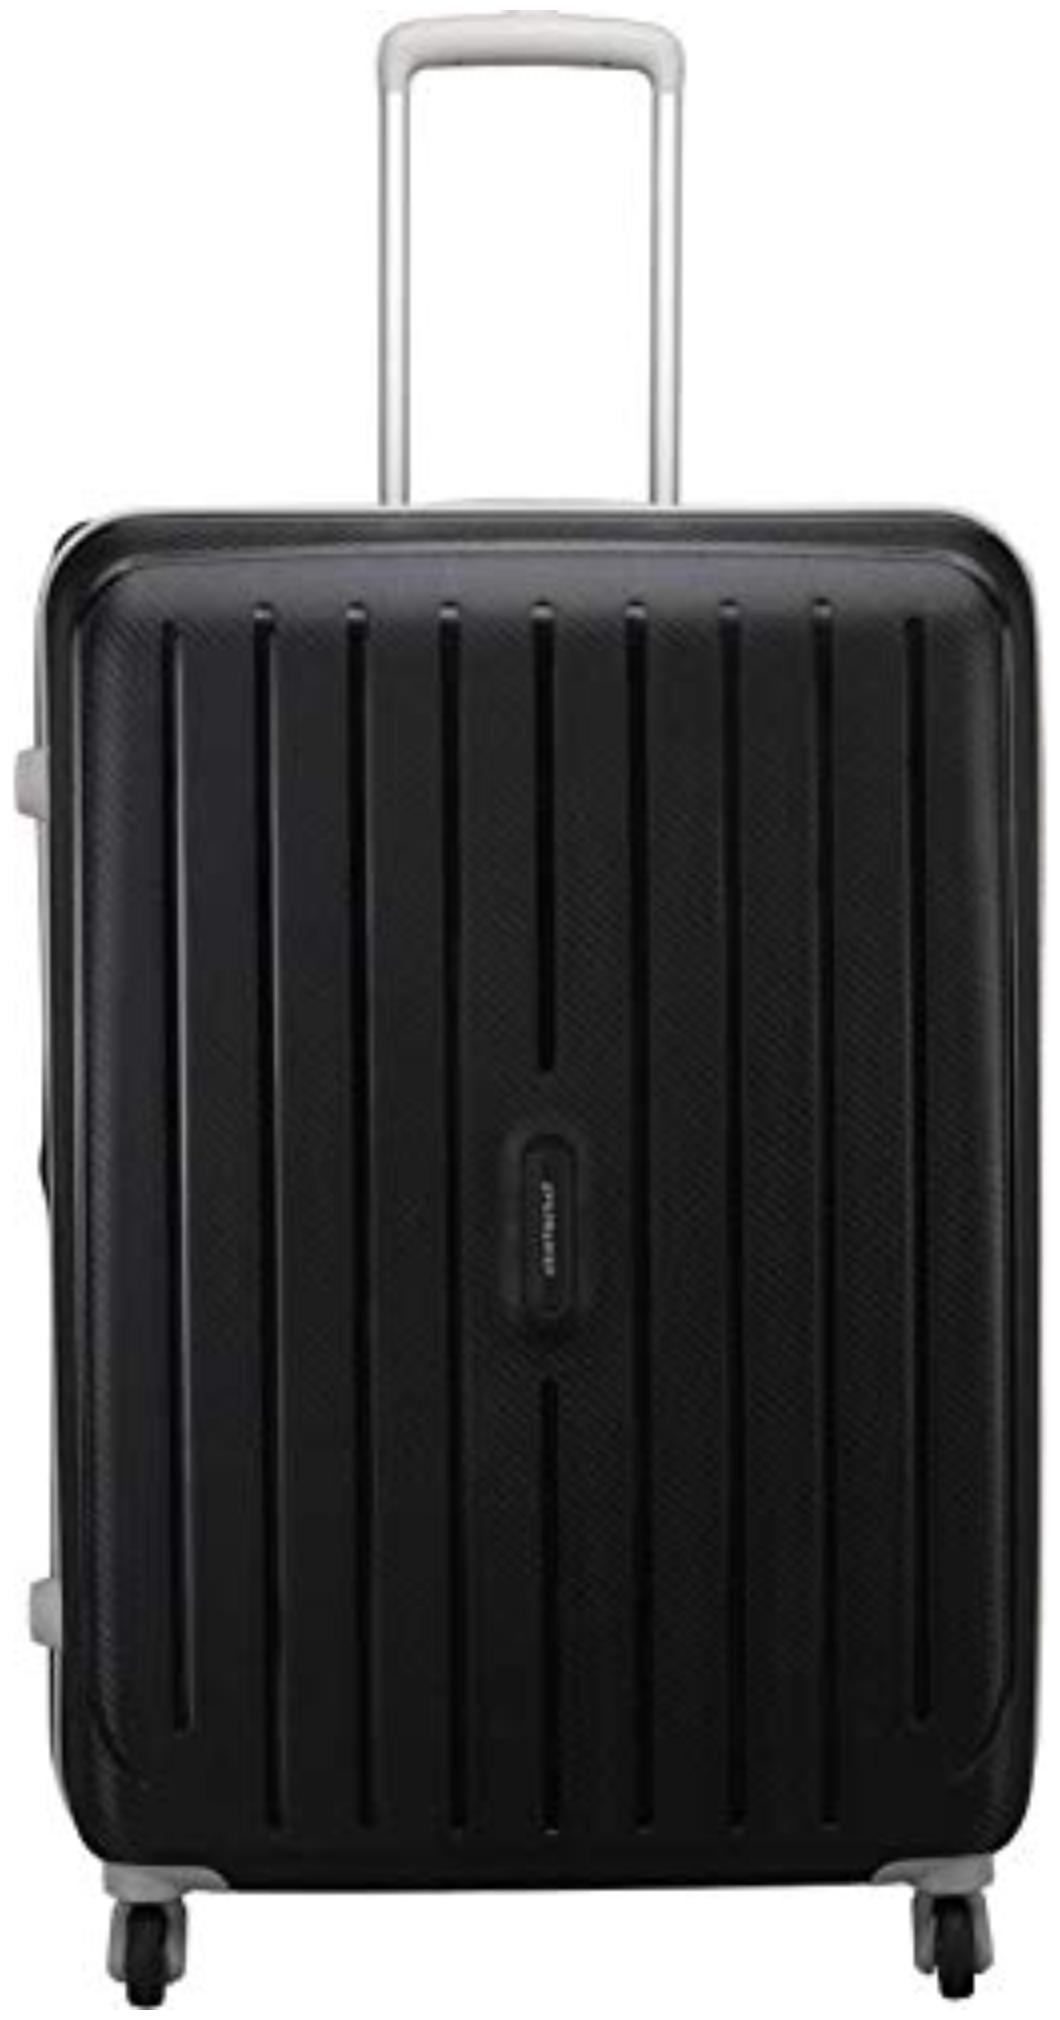 Aristocrat Photon Strolly 75 360 Jbk Check-in Luggage - 29 inch (Black)